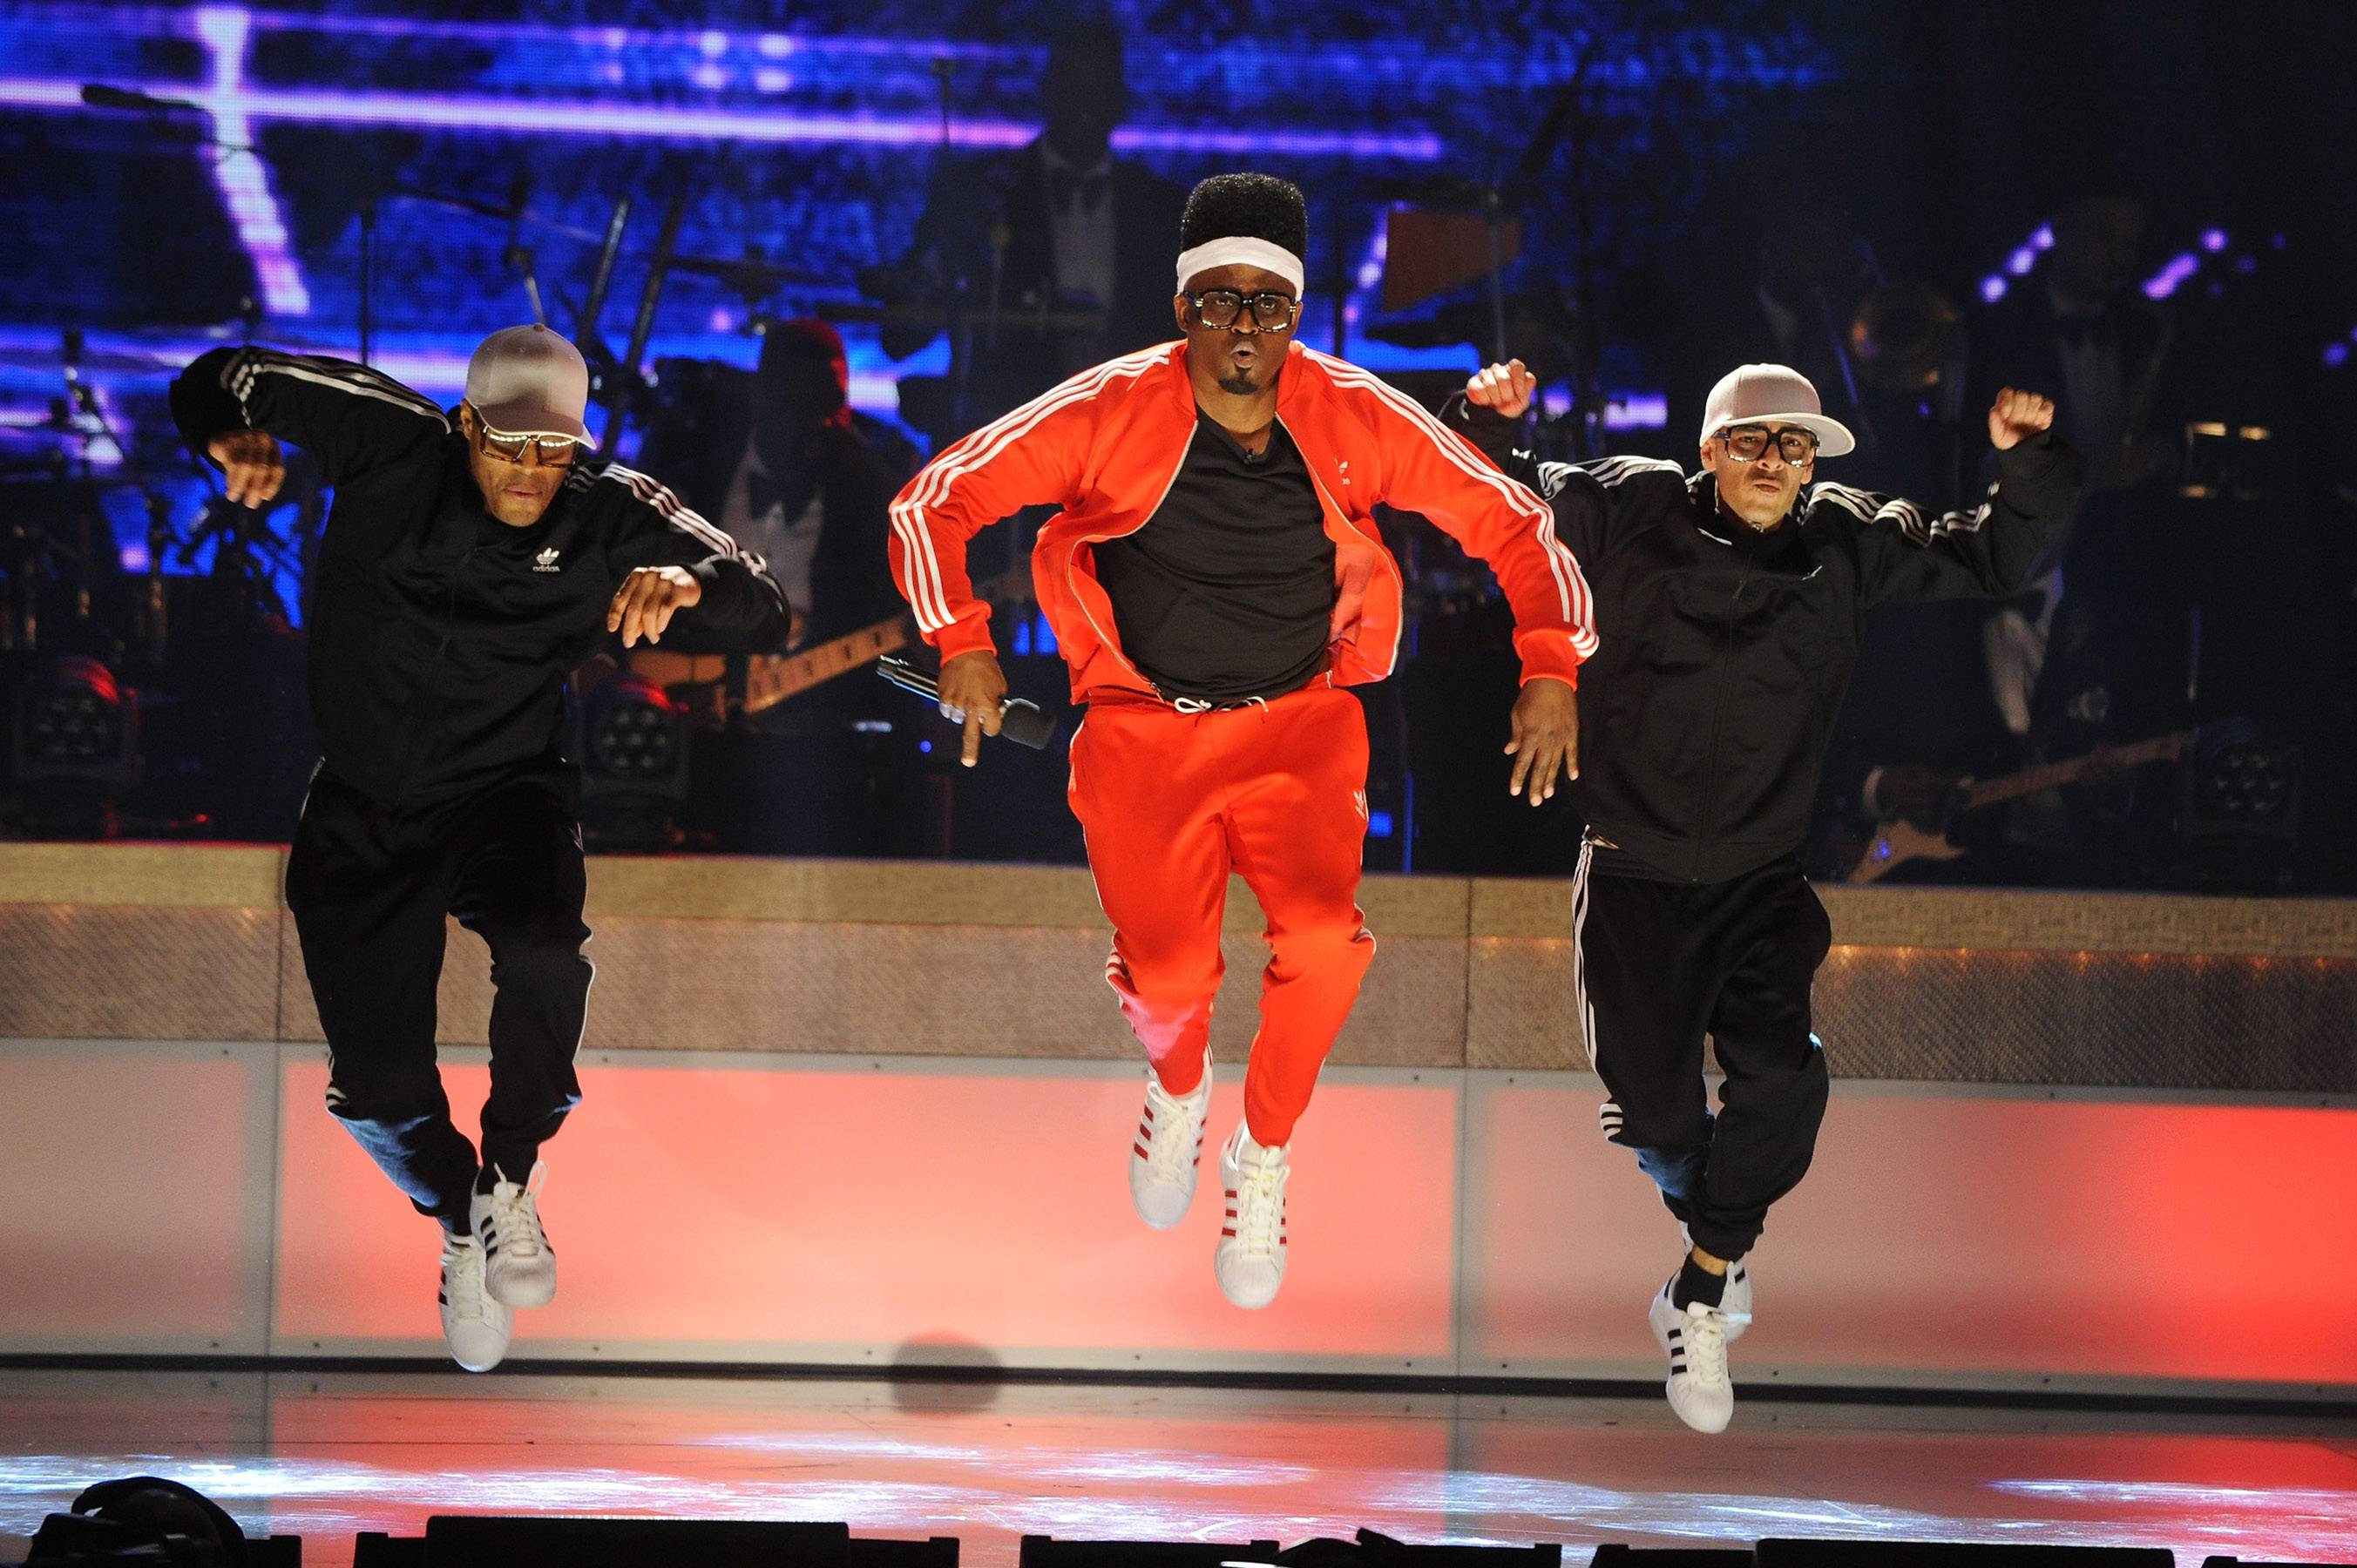 The Wayne Brady Show  - FunnymanWayne Bradygoes all in with a '90s performance. He really shows that he's th a renaissance man with his quick witted raps and killer dance moves. (Photo: Brad Barket/BET/Getty Images for BET)